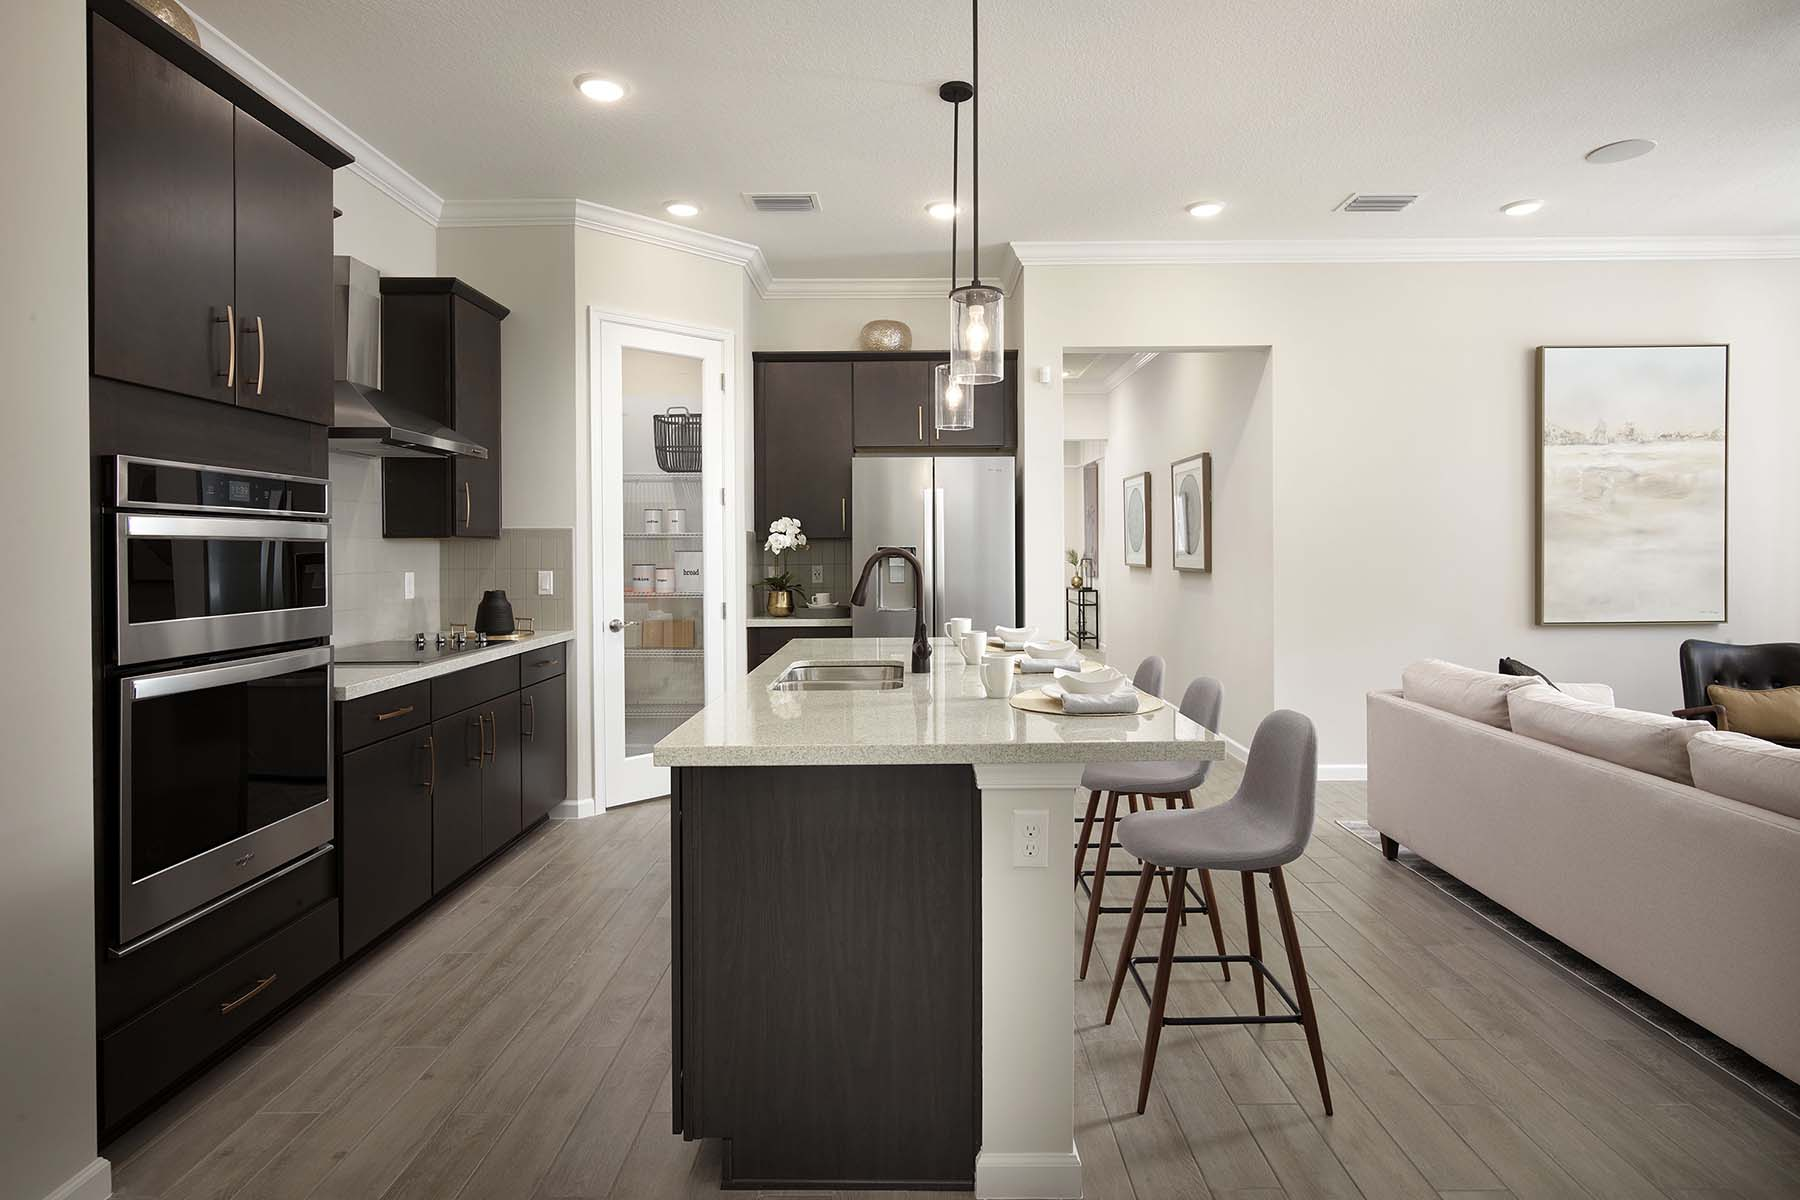 Sabal Plan Kitchen at Solcera in West Palm Beach Florida by Mattamy Homes